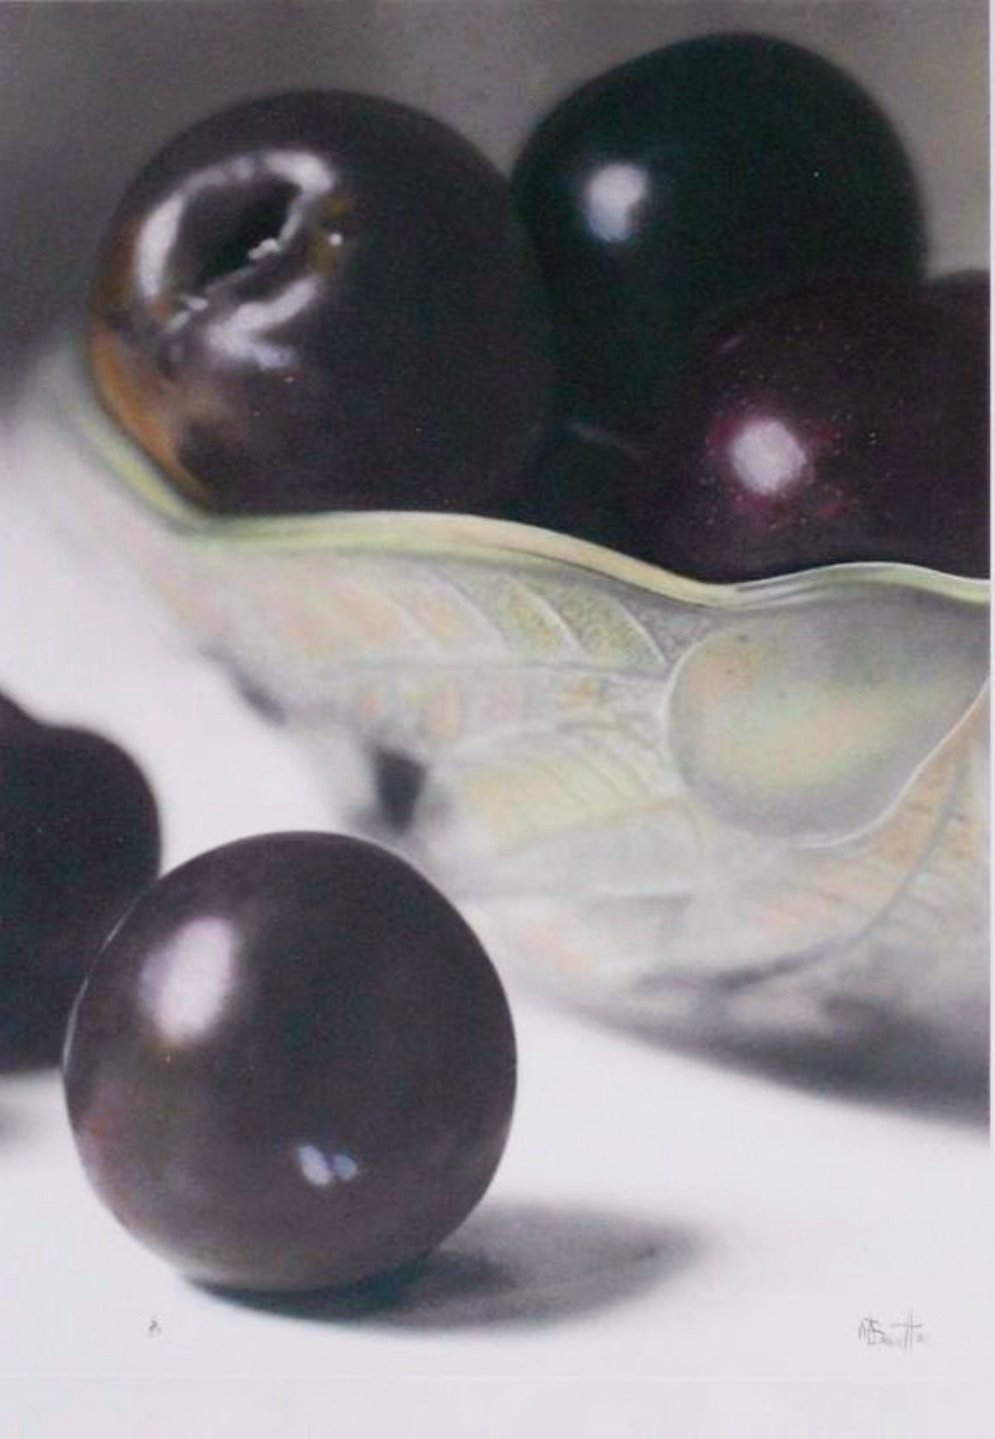 A.-A.-Burnett-Plums-in-Translucent-Bowl-23.5x17-AAB-0087-Original-Archival-Black-White-Photos-Individually-Handpainted-Printed-Signed-by-the-Artist_-Only-15-ever-printed.-list-1100-our-800-e1449673412395.jpg